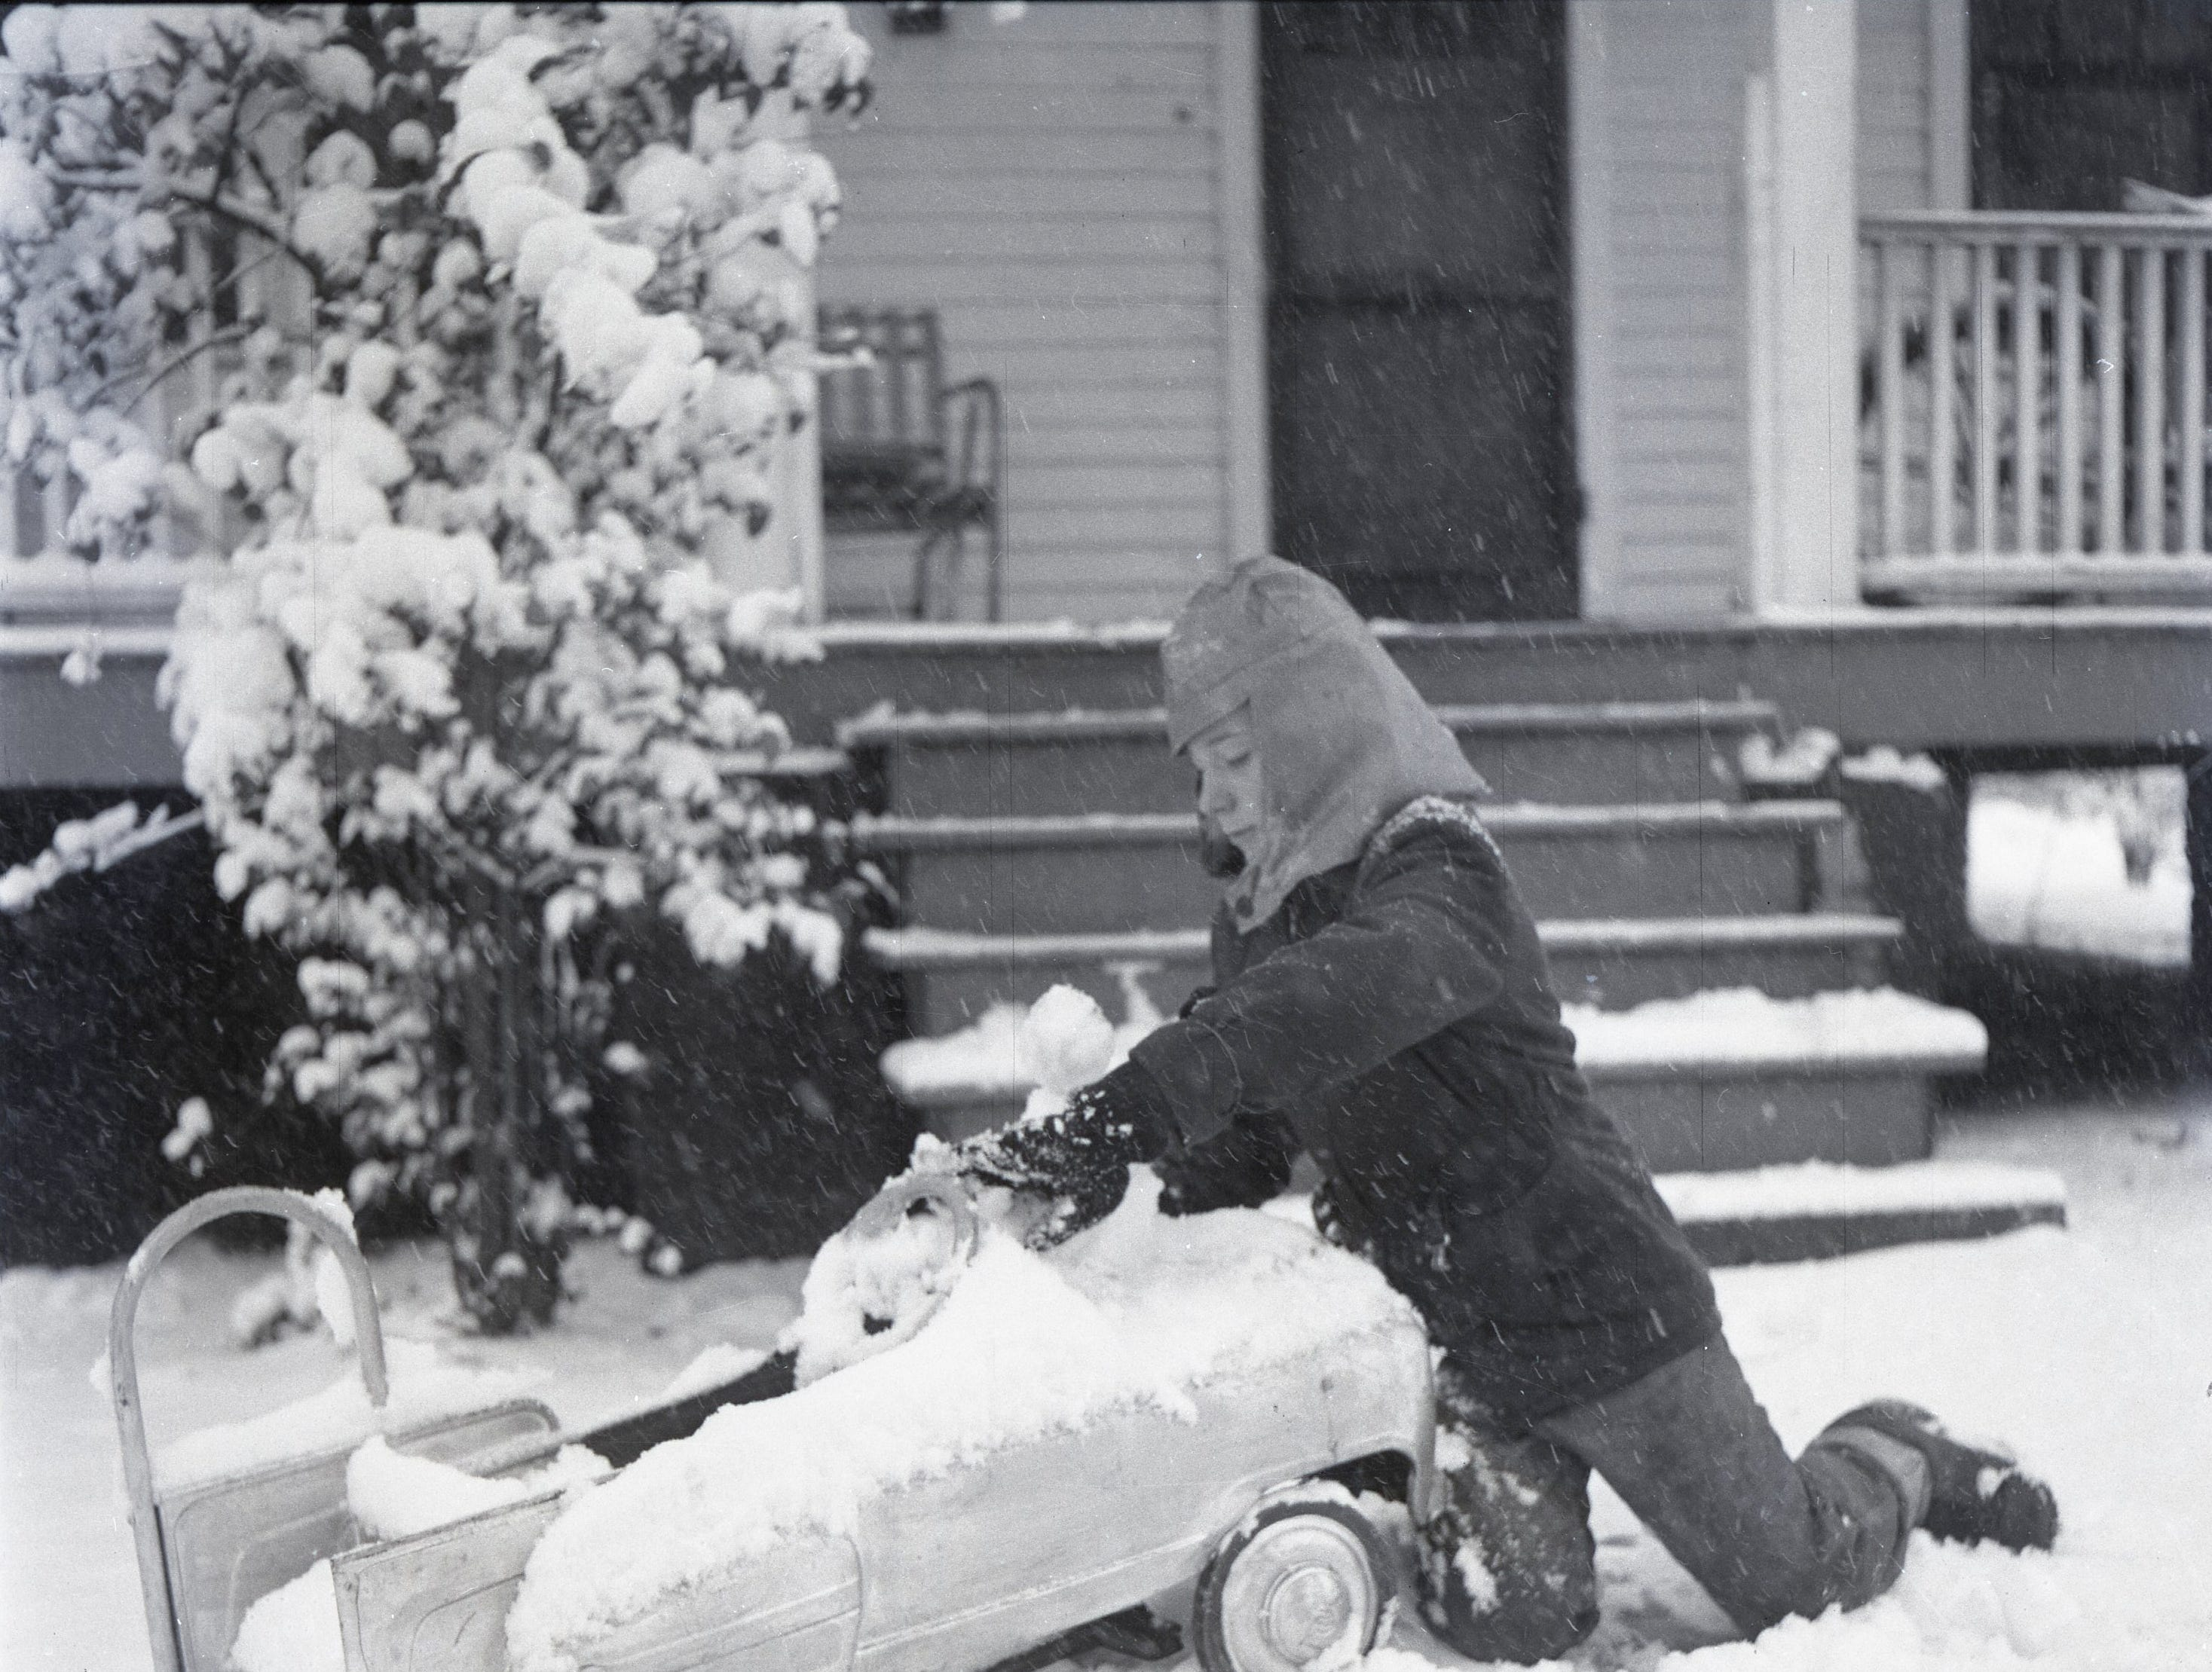 Snow blanked Greenville in the winter of 1958.